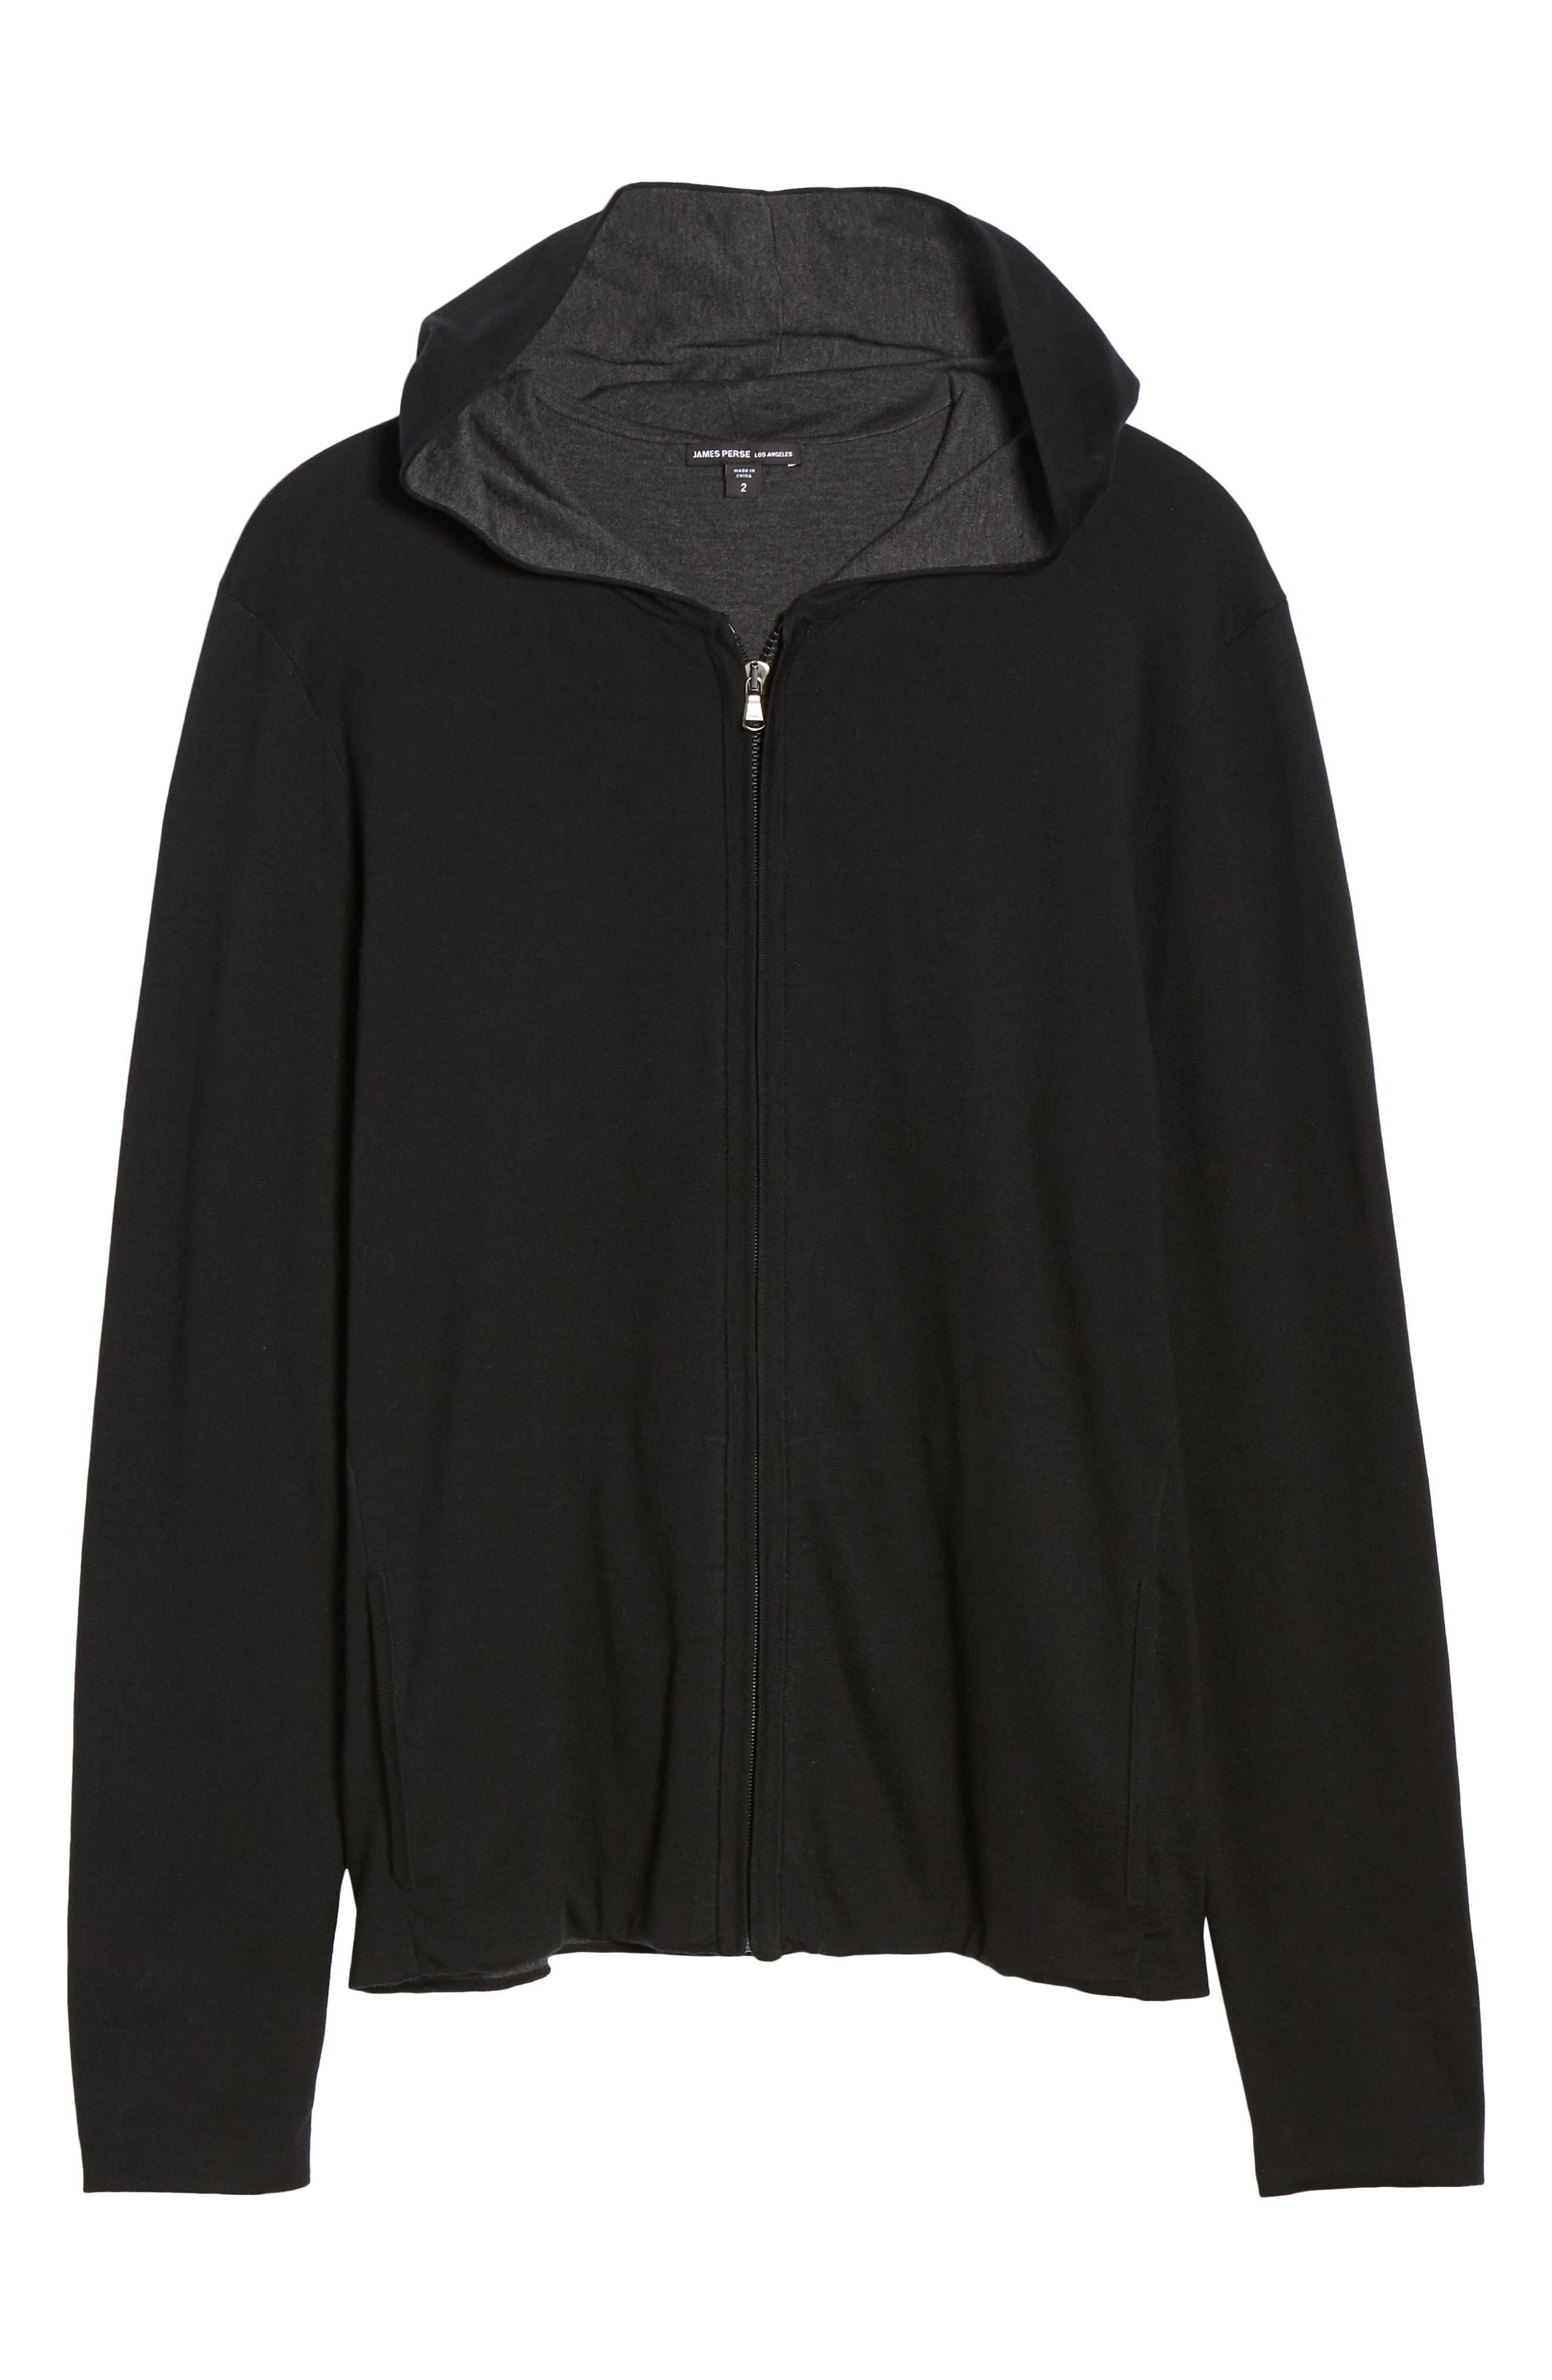 JAMES PERSE, Double Layer Full Zip Hoodie, Alternate thumbnail 6, color, 003